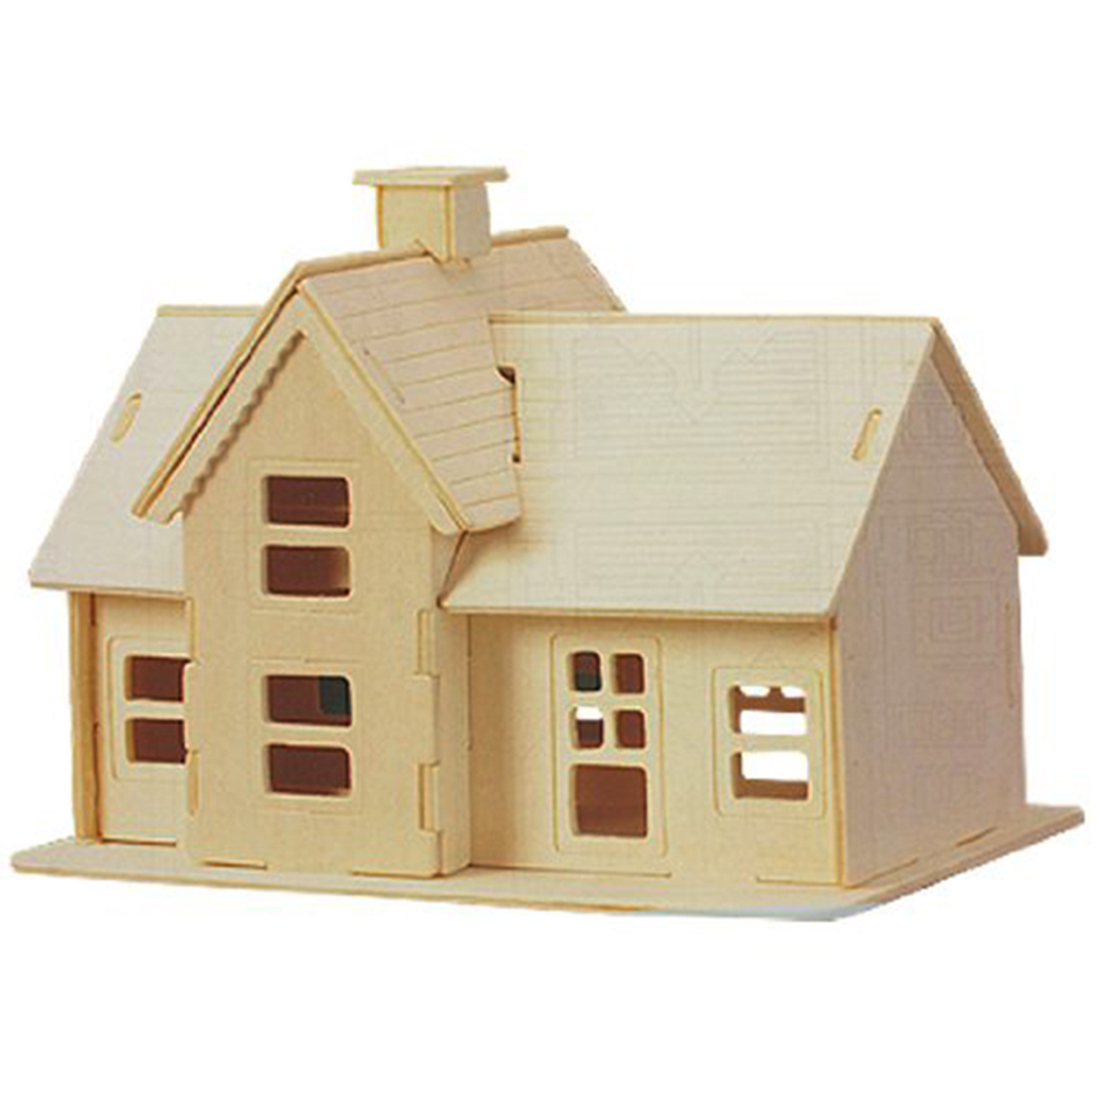 Kit de construction puzzles 3d de modele de maison de for Modele de construction de maison